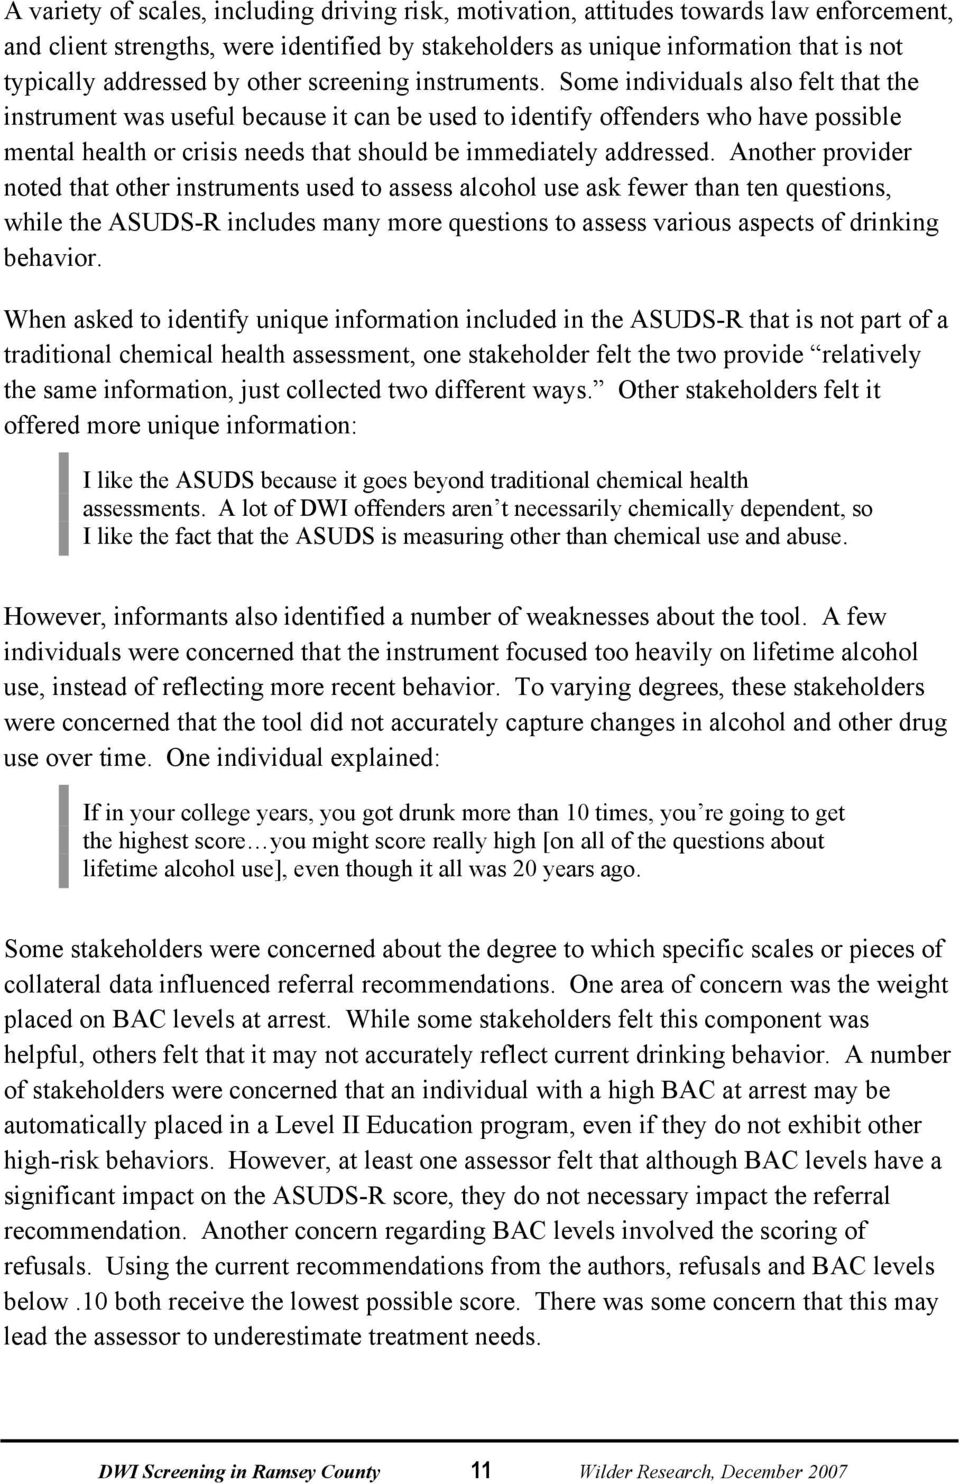 Dwi Screening In Ramsey County An Assessment Of The Asuds R Pdf